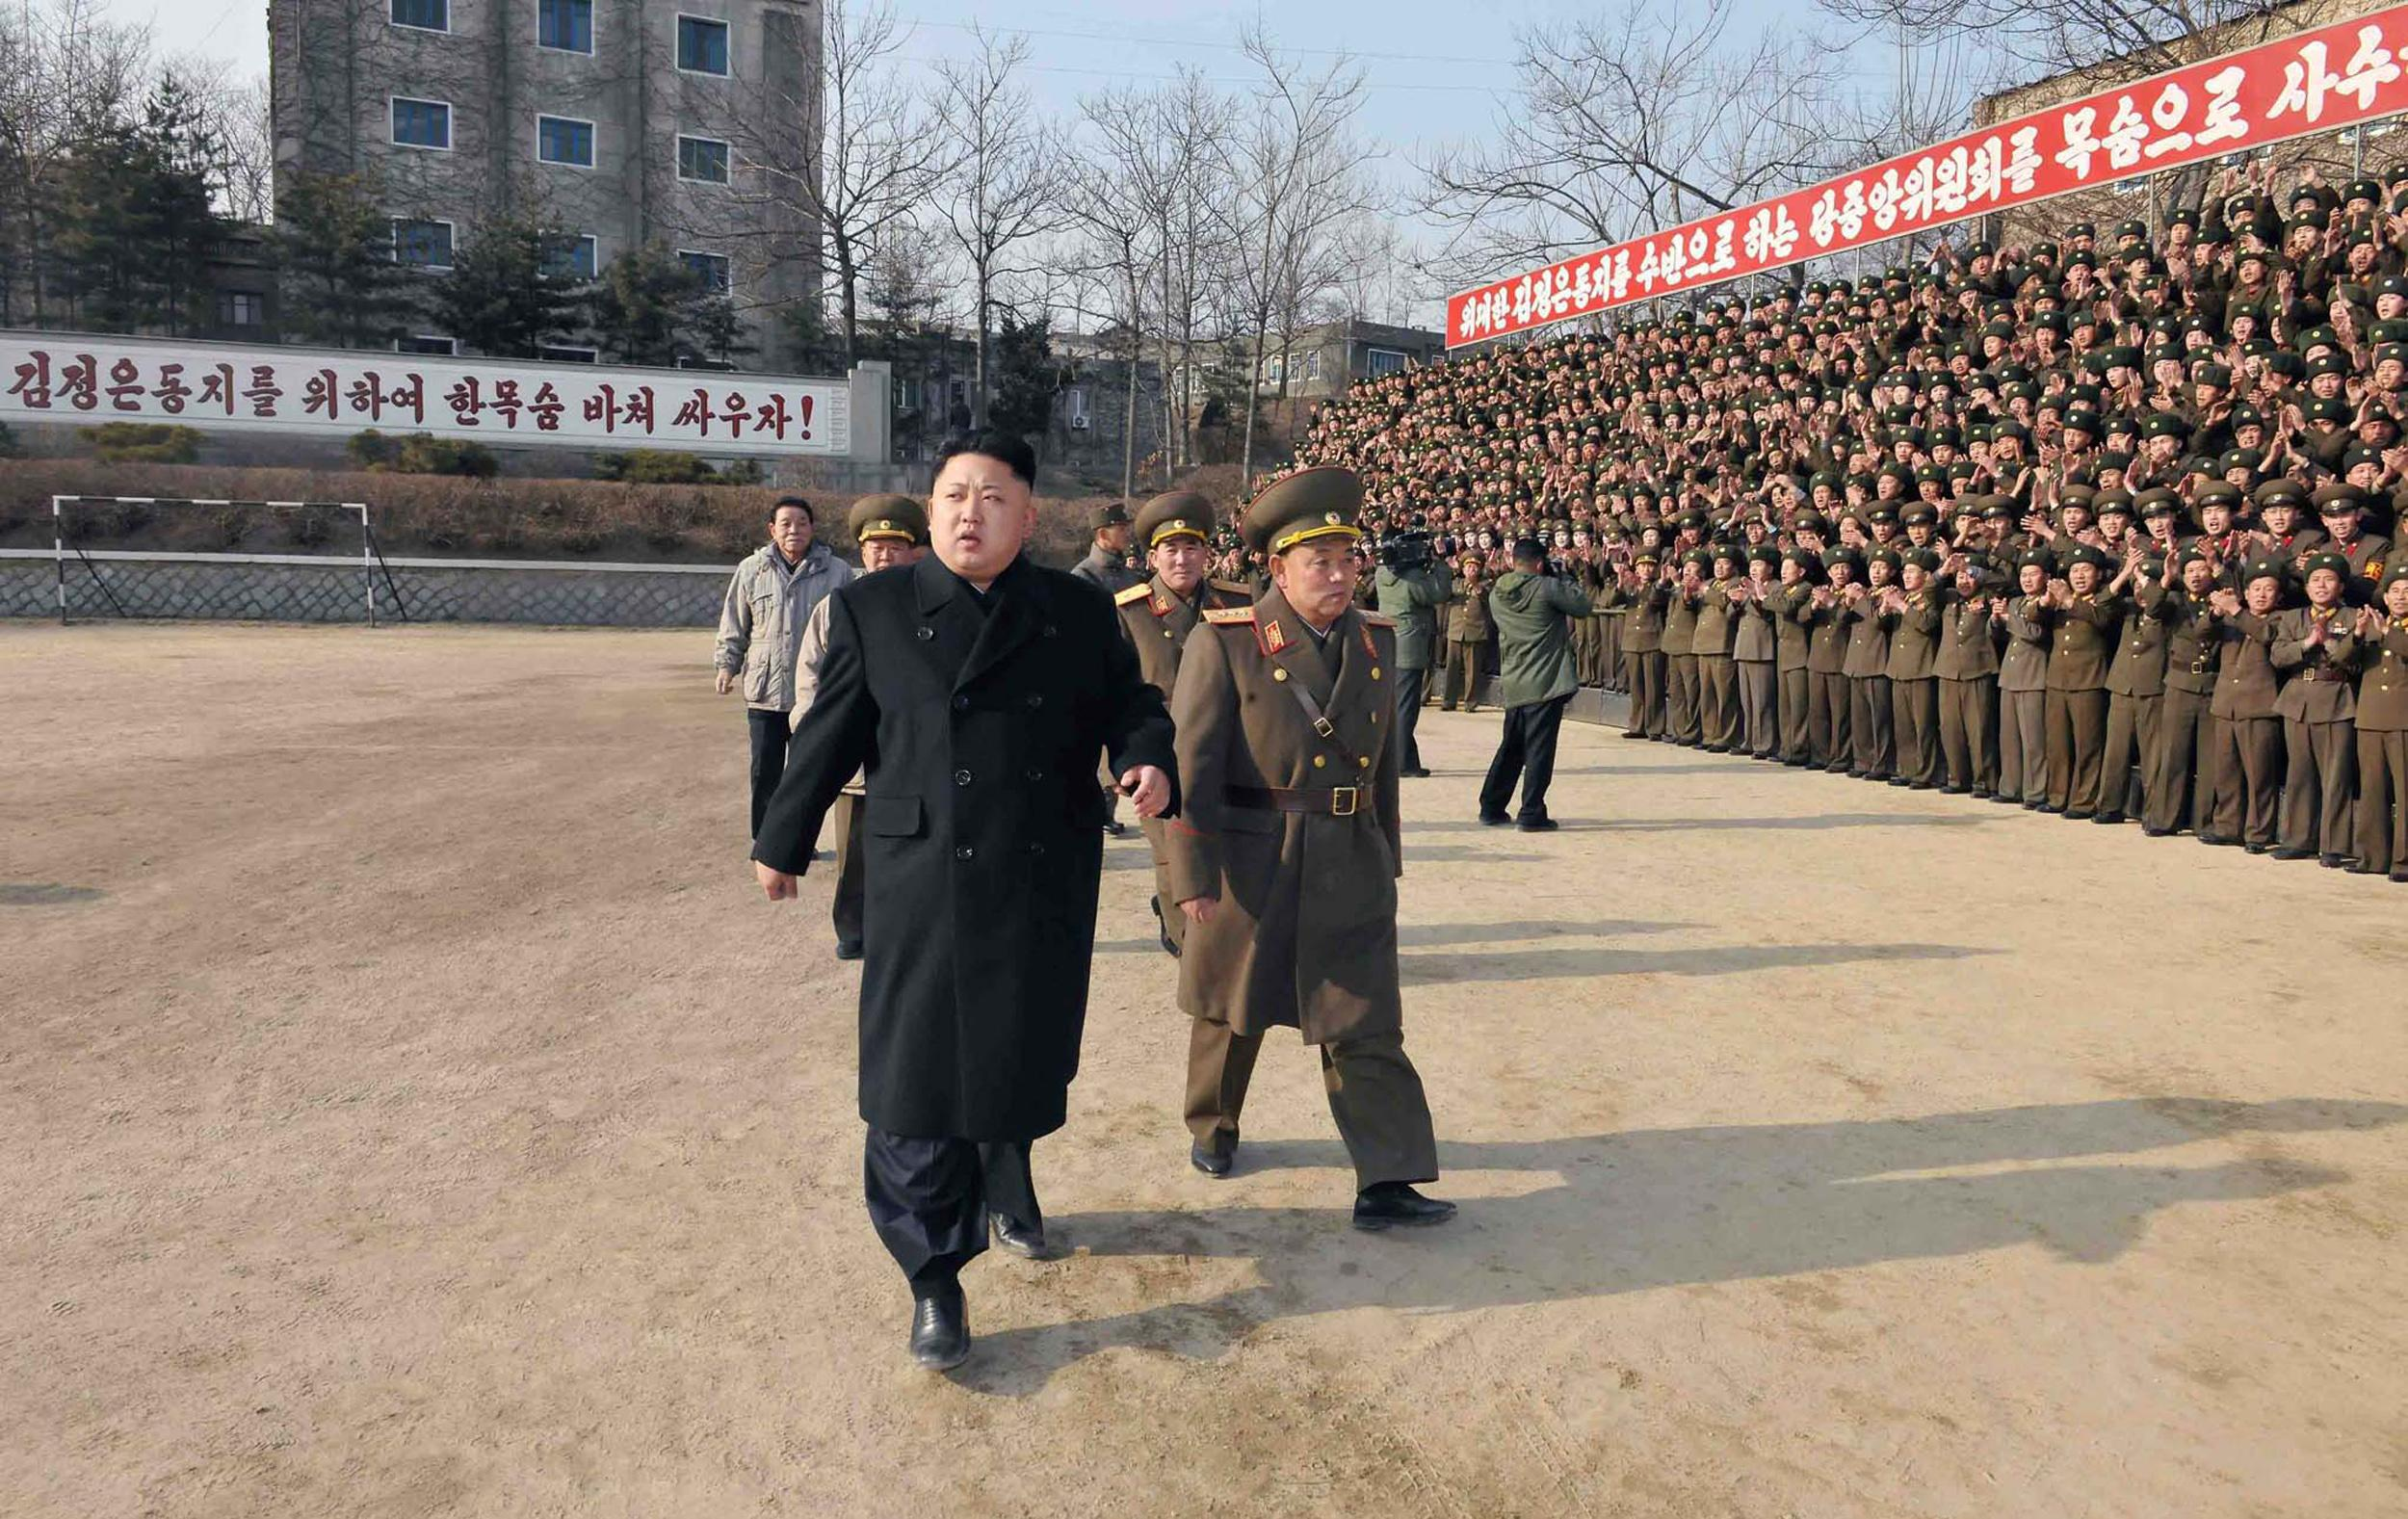 If War With North Korea Comes, What Are the U.S. Military's Most Powerful Weapons?